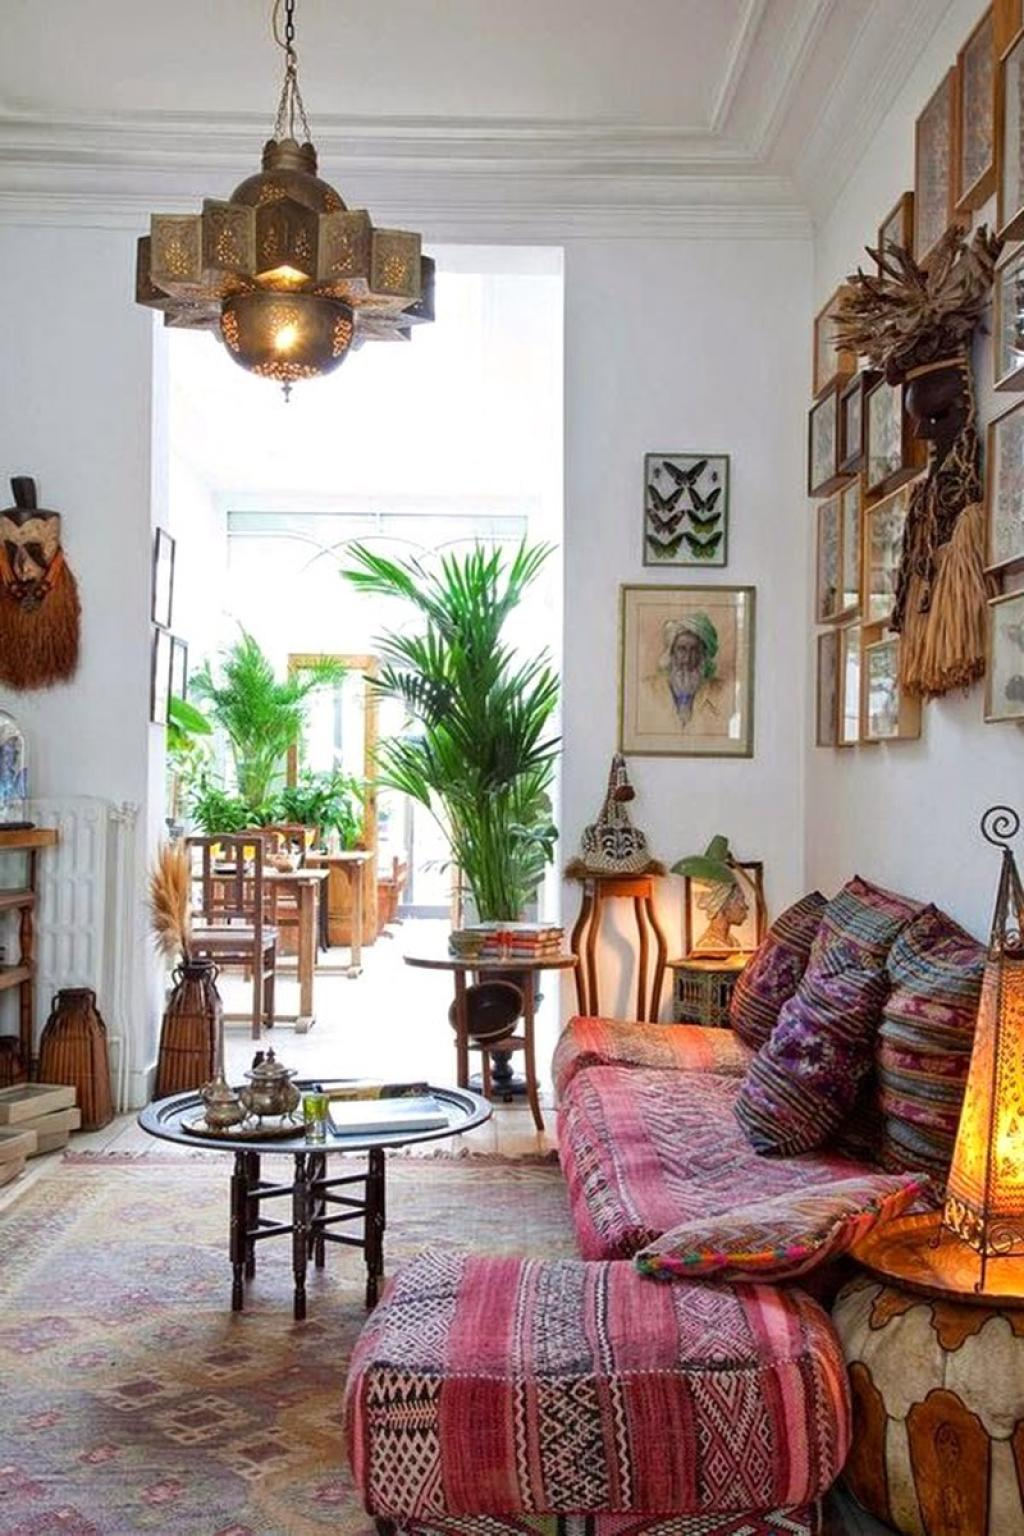 Interior Design Ideas For Living Rooms: 31 Best Bohemian Interior Design Ideas